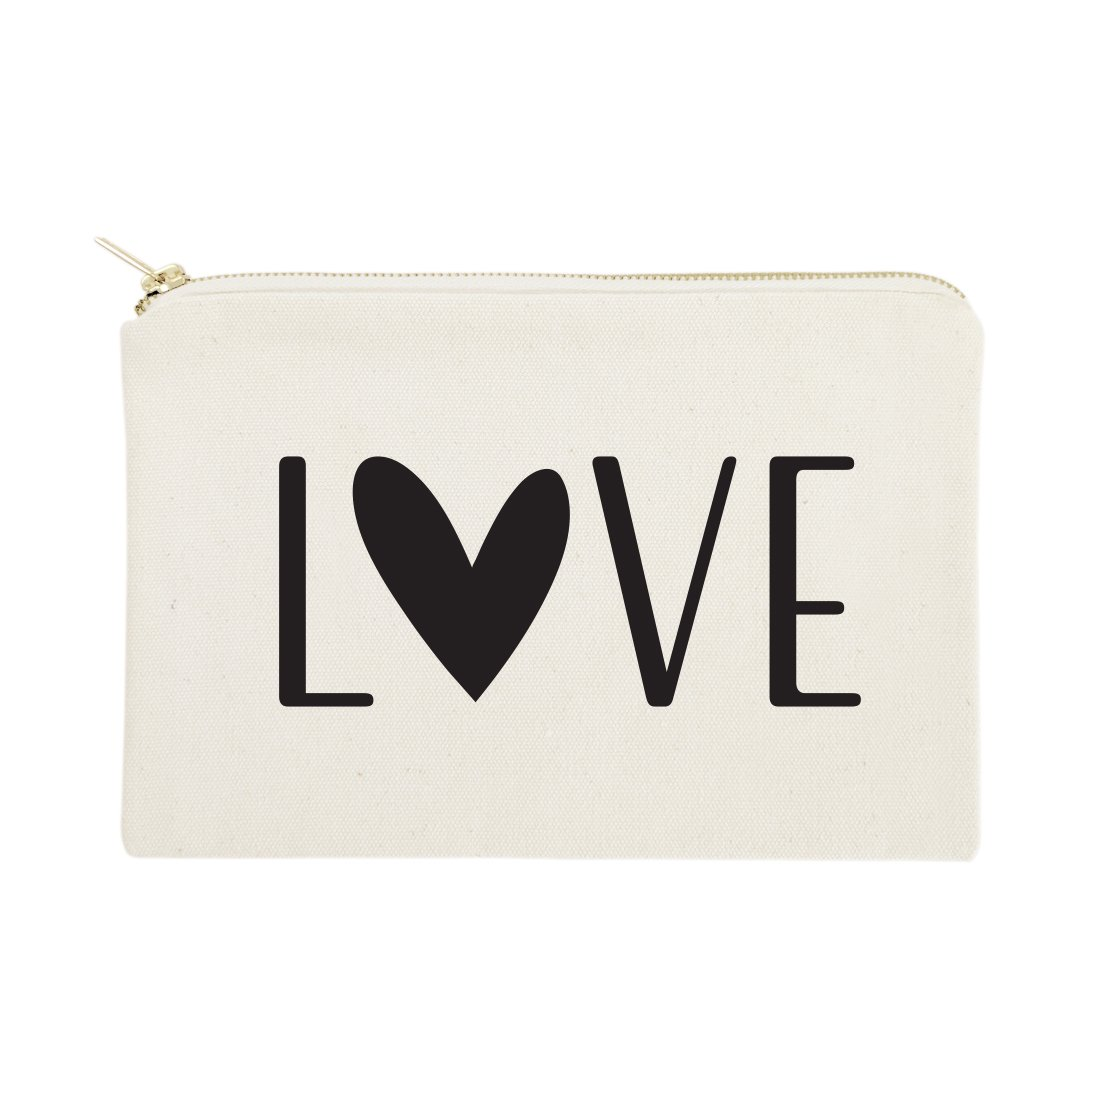 The Cotton & Canvas Co.LoveCosmetic Bag and Travel Make Up Pouch